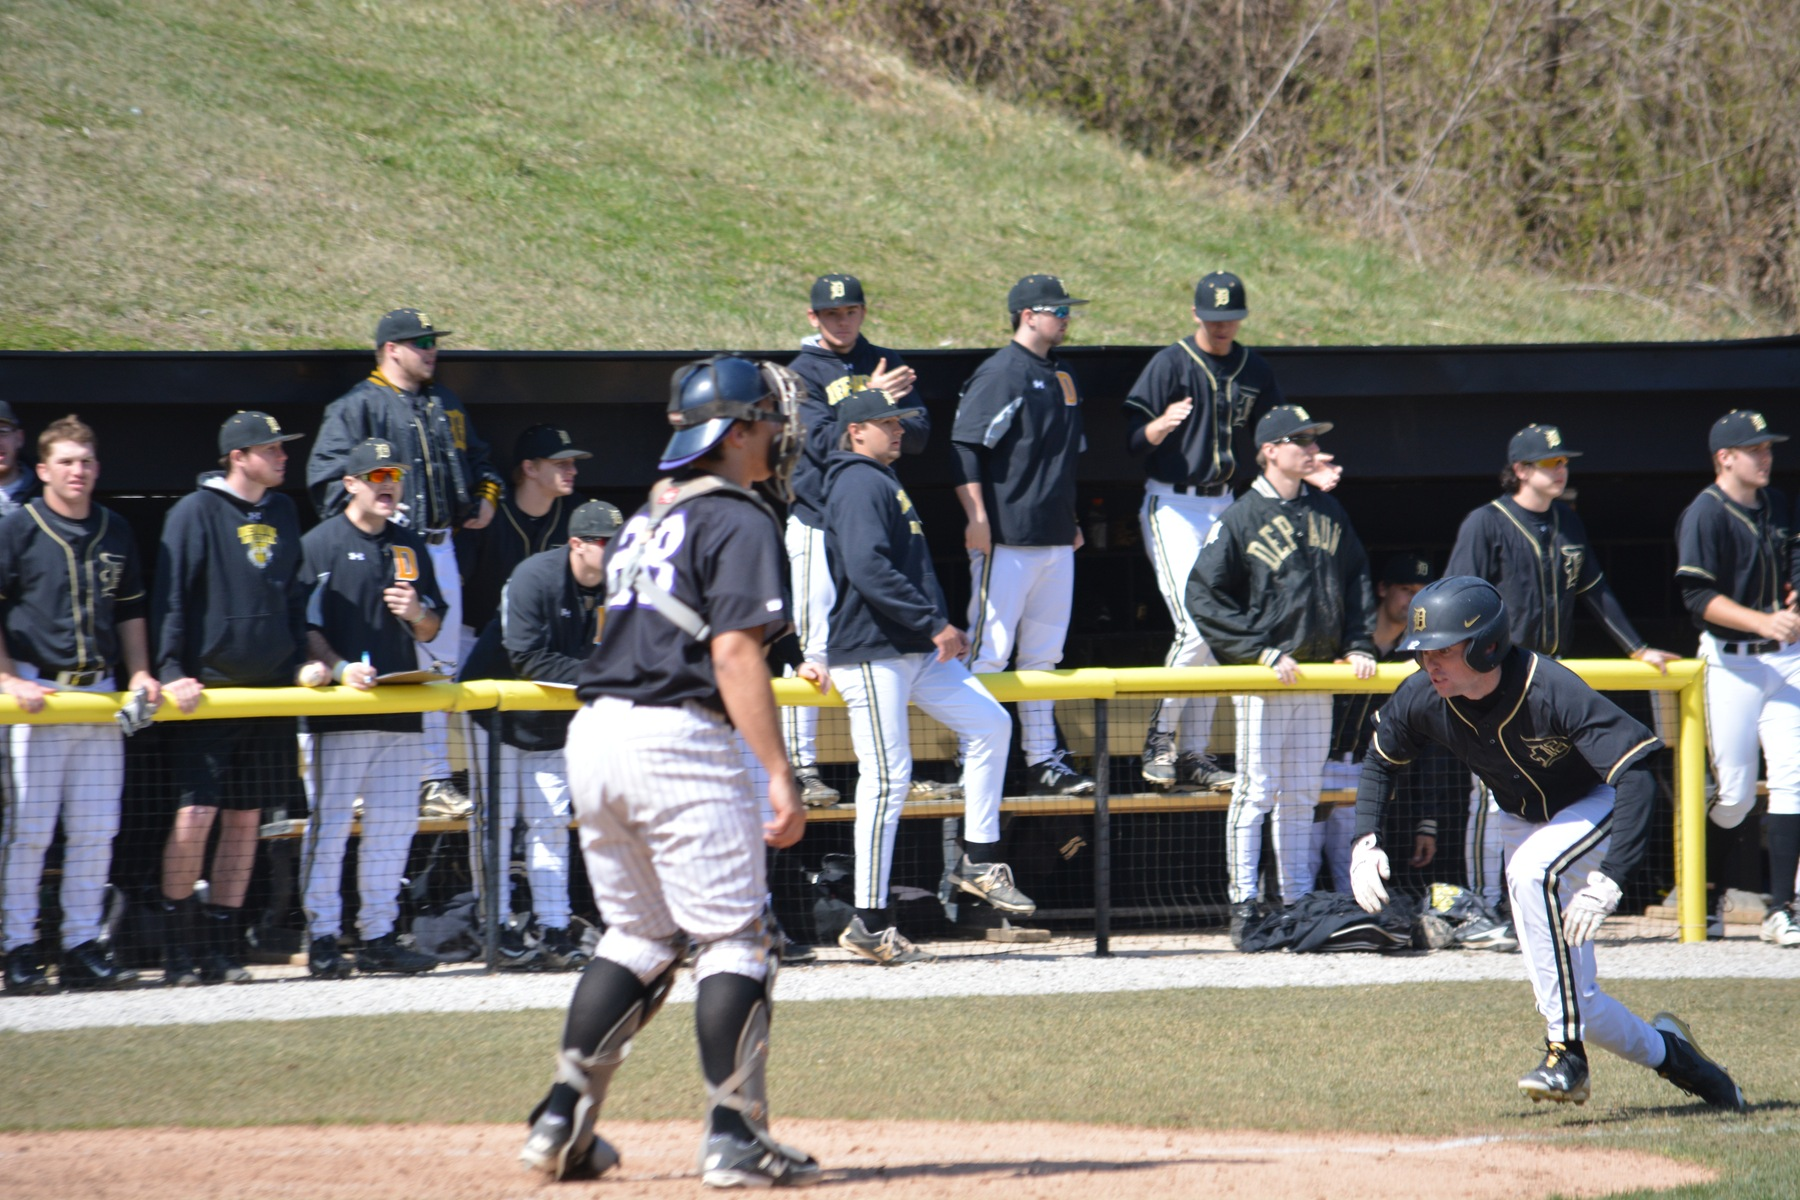 Dillon Goes Seven Strong as Tigers Collect 13th Win